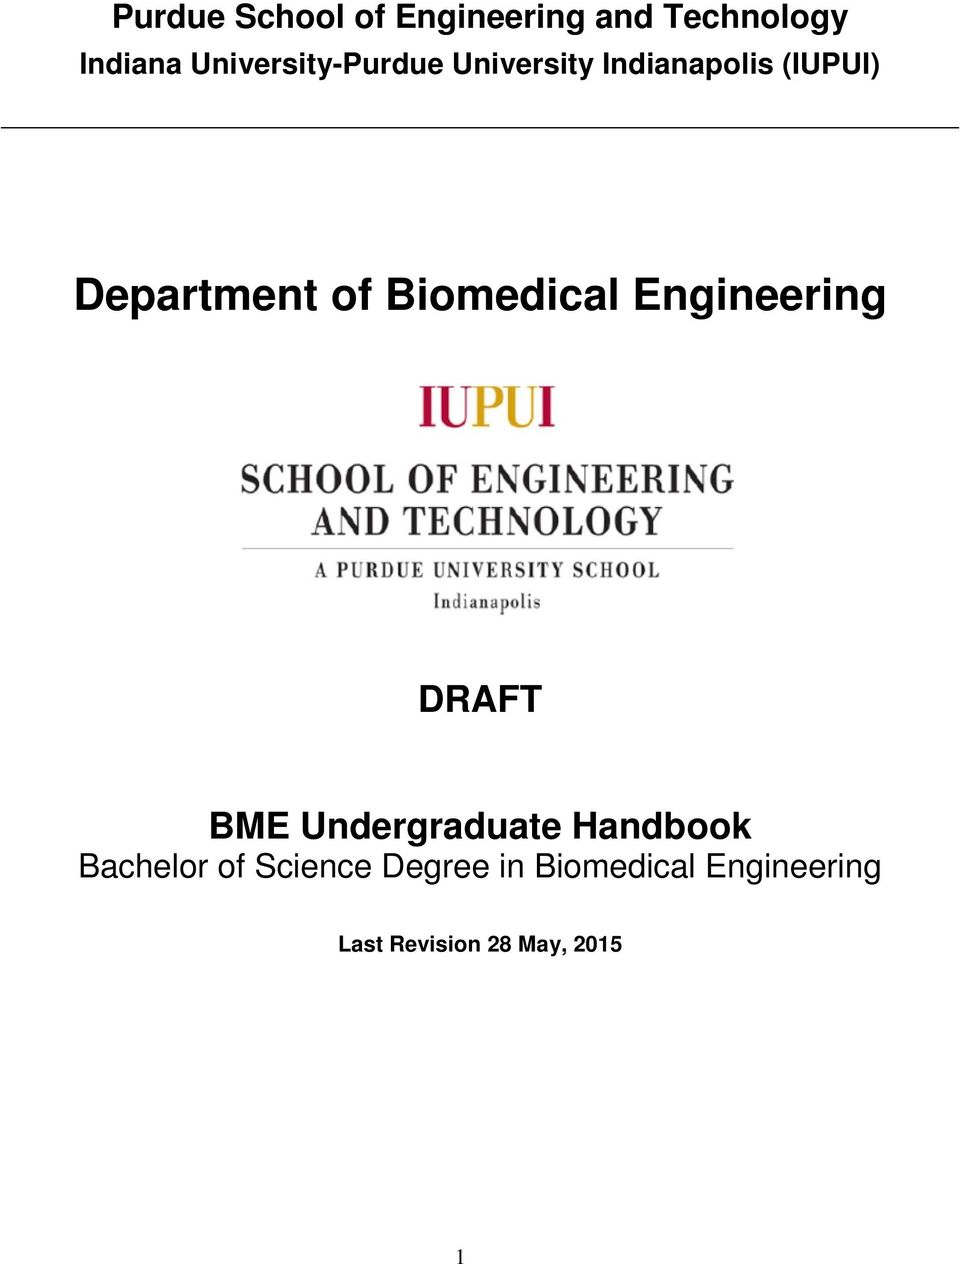 Biomedical Engineering DRAFT BME Undergraduate Handbook